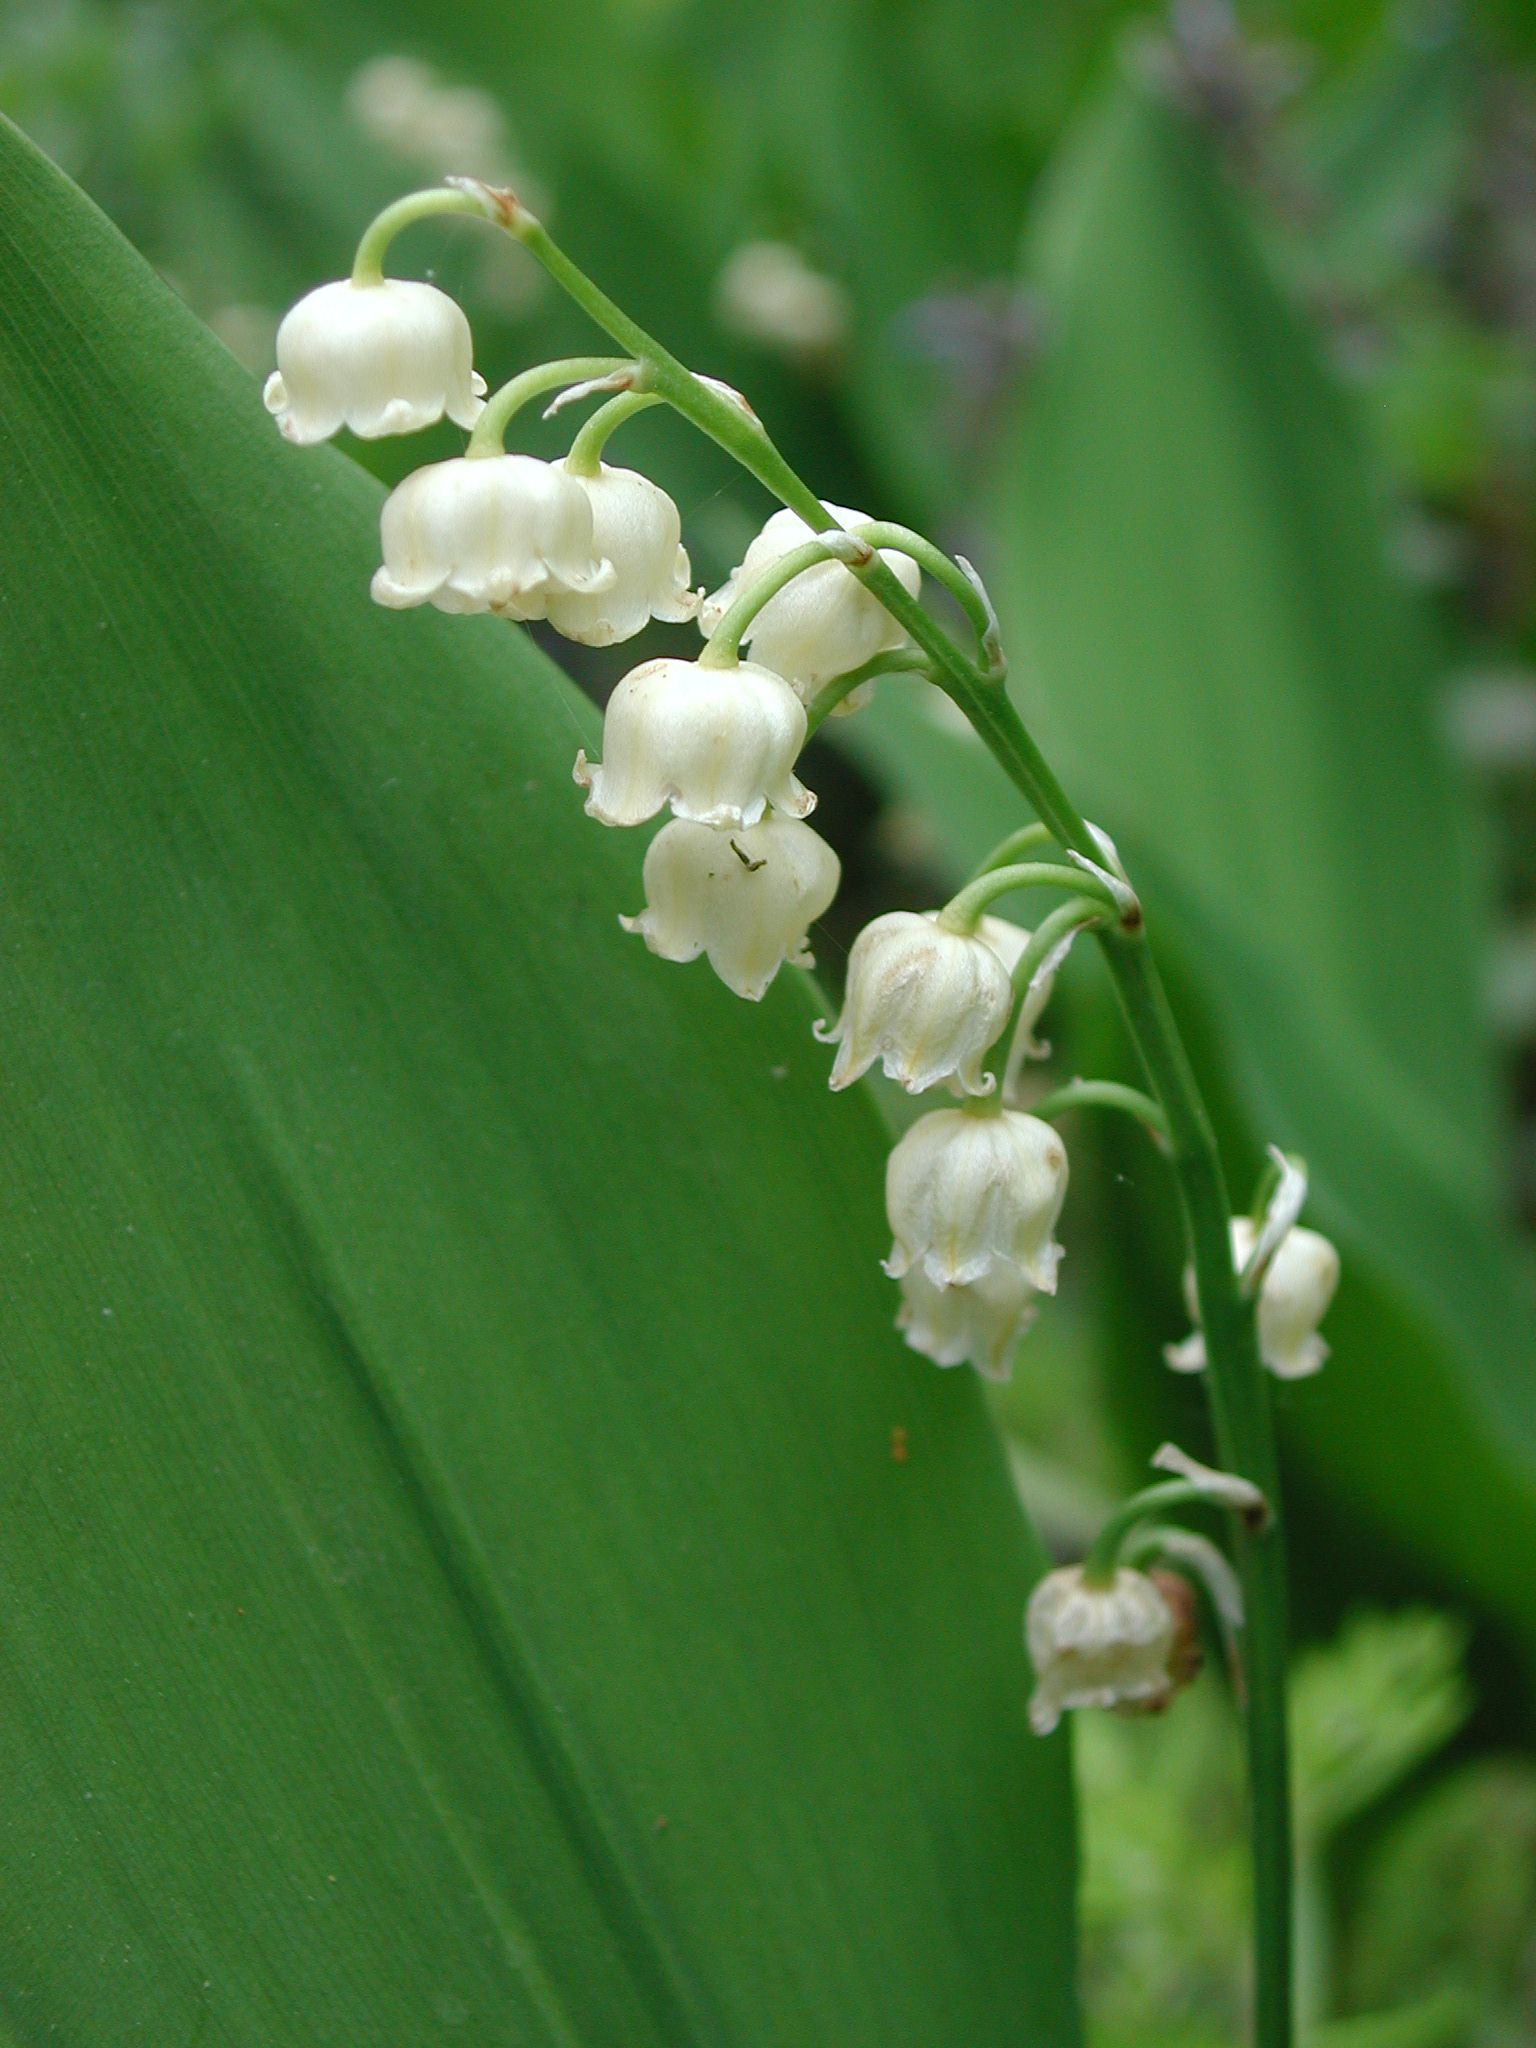 Convallaria Majalis Ruscaceae Image 14499 At Diversityoflife Org Lily Of The Valley Shade Garden Plants